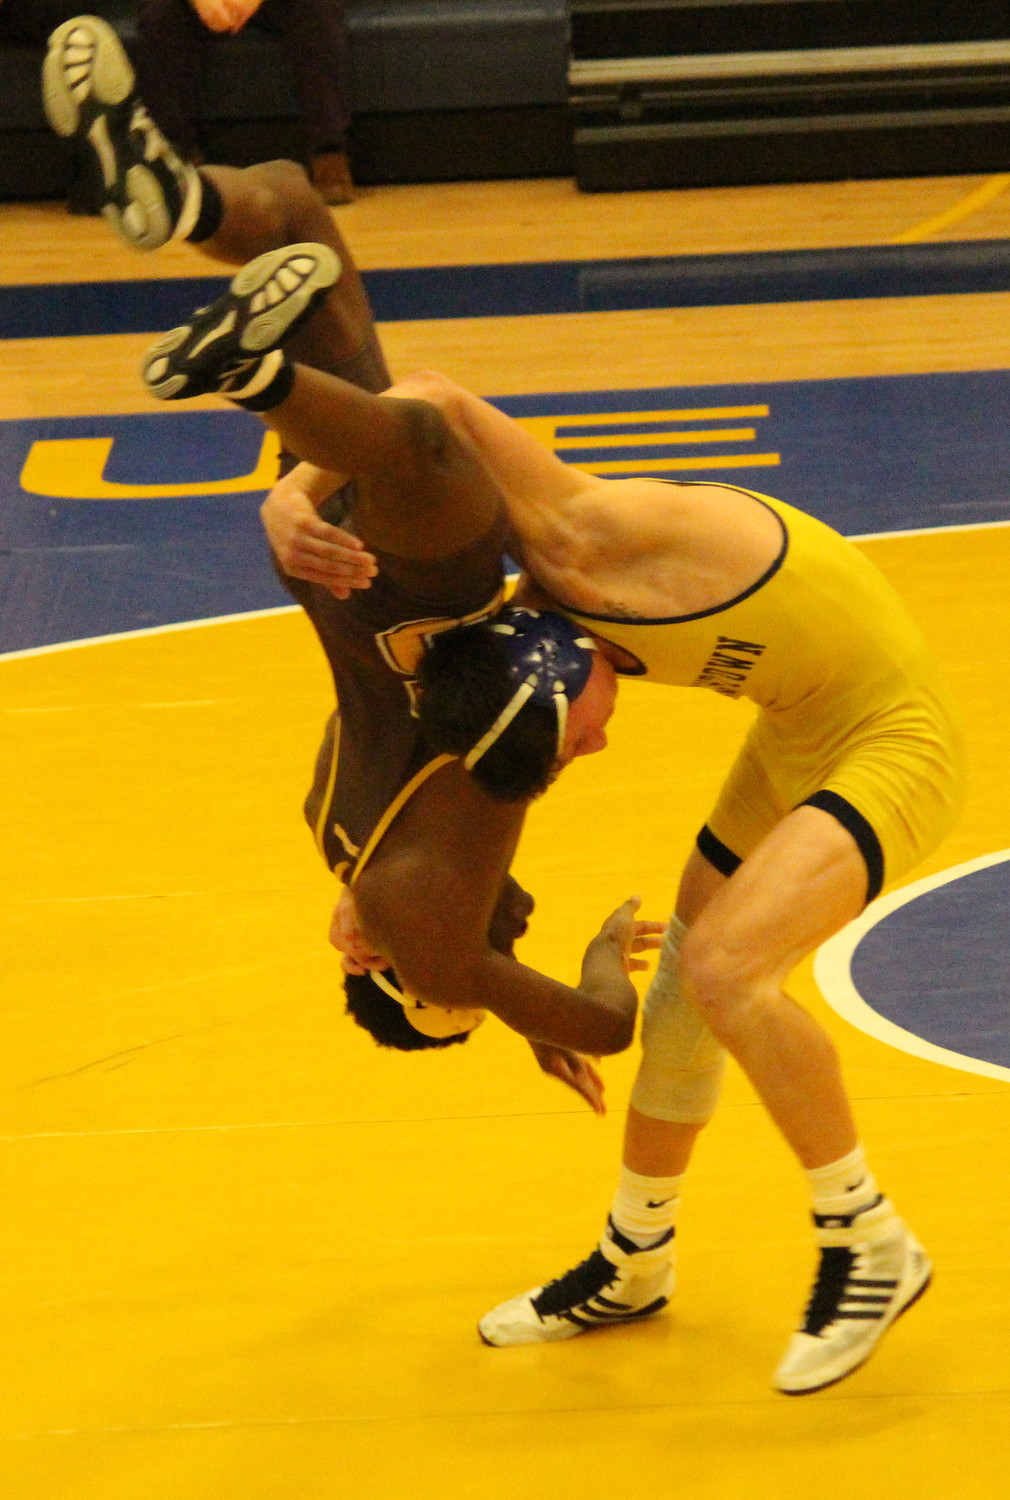 Senior Devin Martin registered a 15-0 technical fall at 145 pounds vs. Milton Hershey.